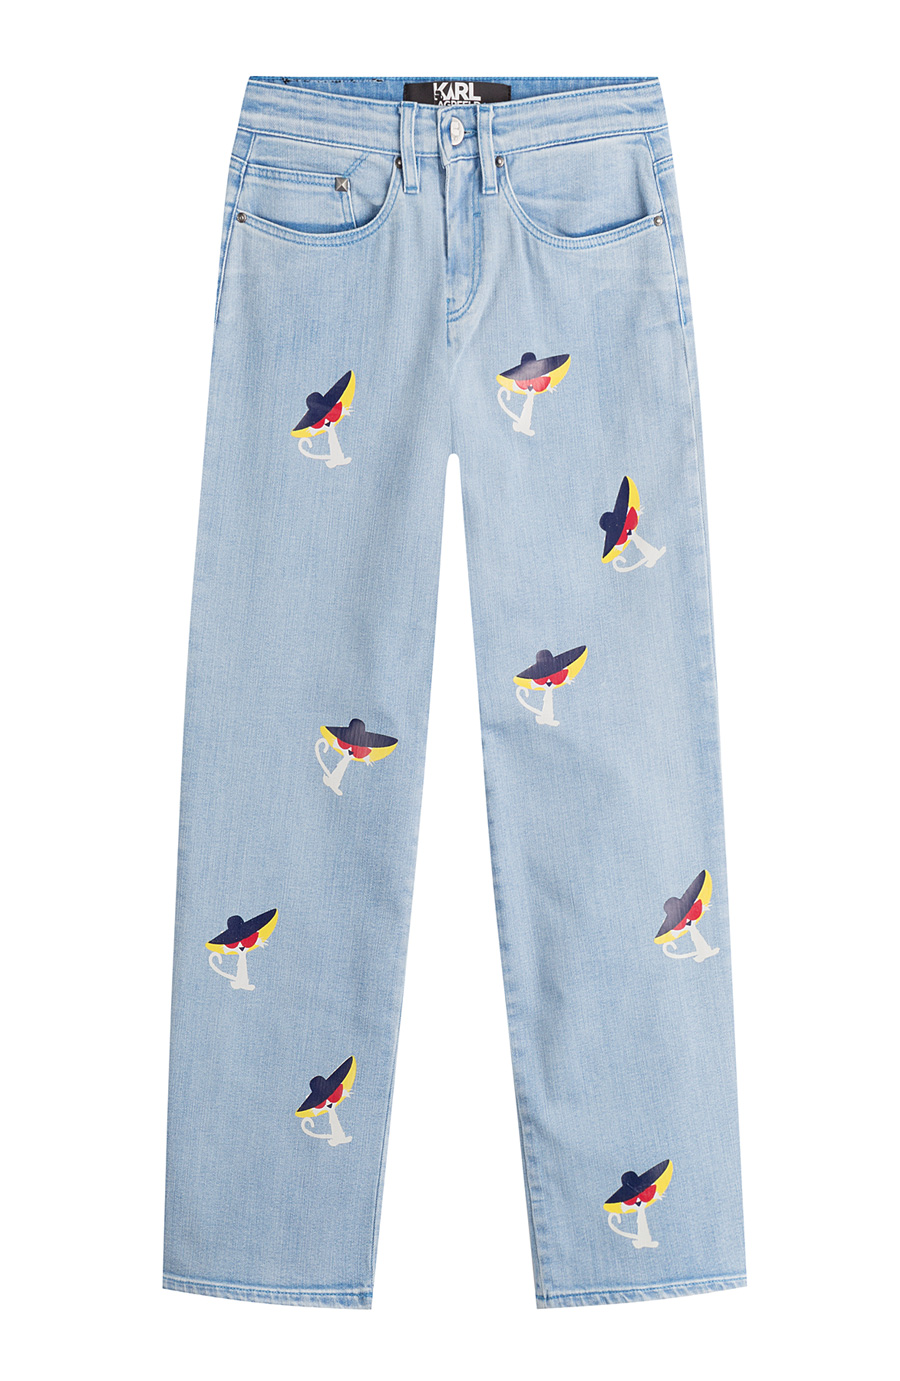 Karl Lagerfeld Cropped Jeans With Choupette Print In Blue